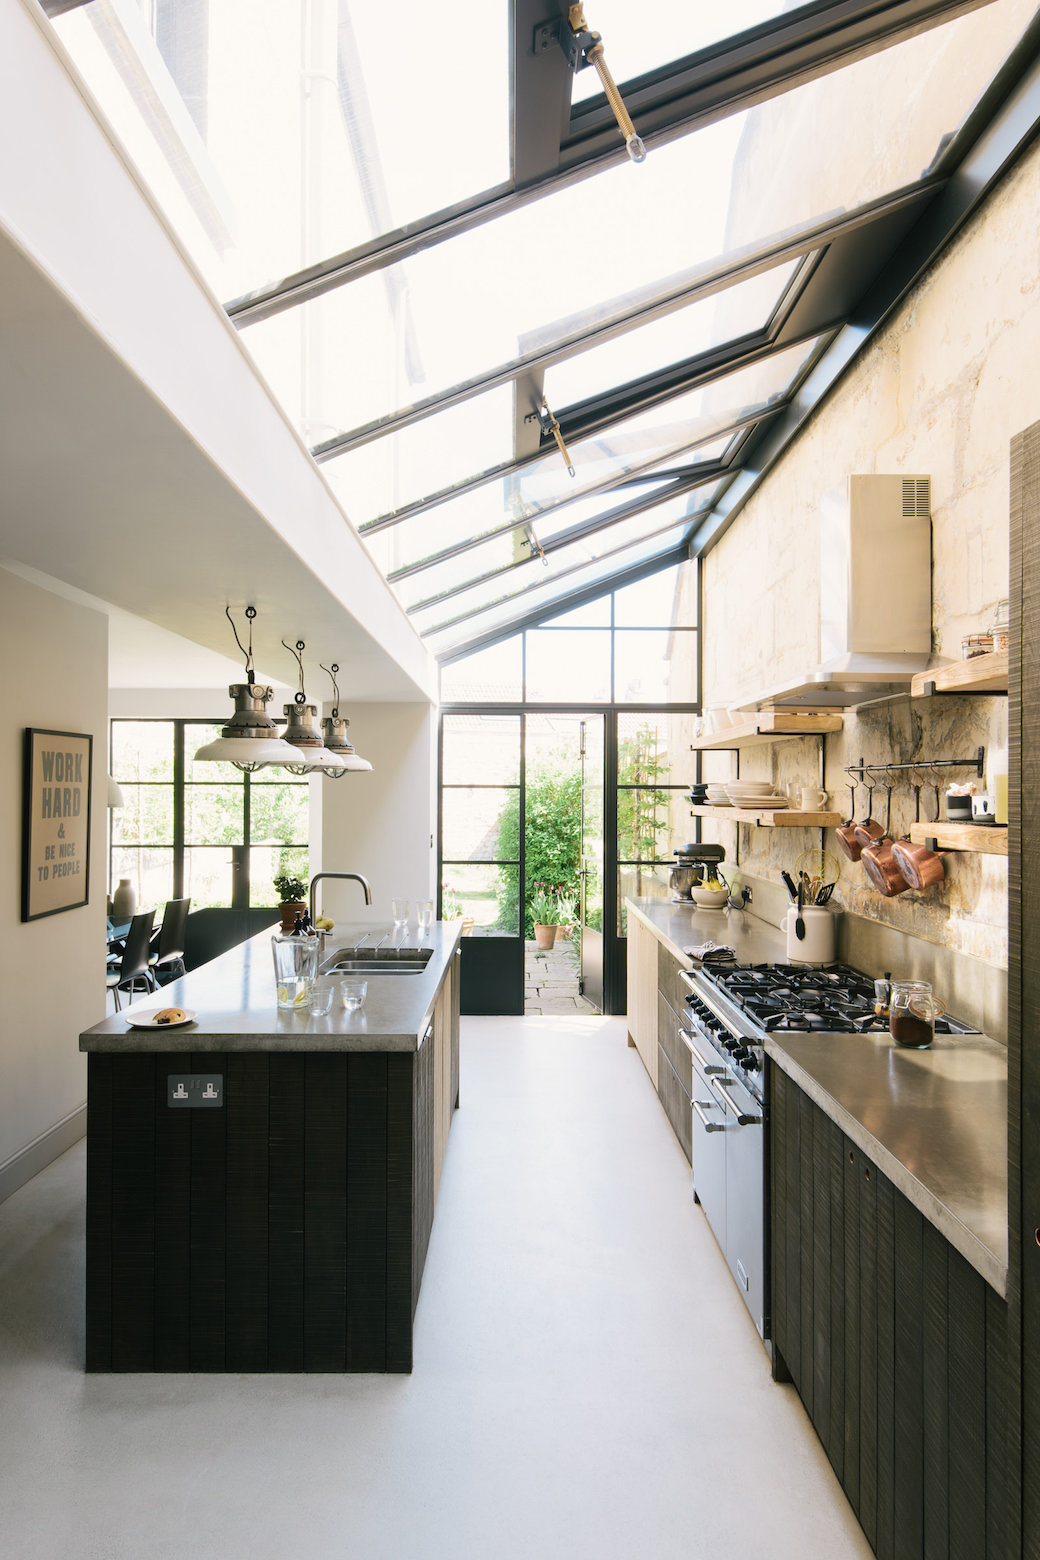 This kitchen in Bath showcases the Sebastian Cox cabinets brilliantly as the owners a chef and a fashionista combined the rough sawn cupboards with a ... & The Larkhall kitchen by deVOL